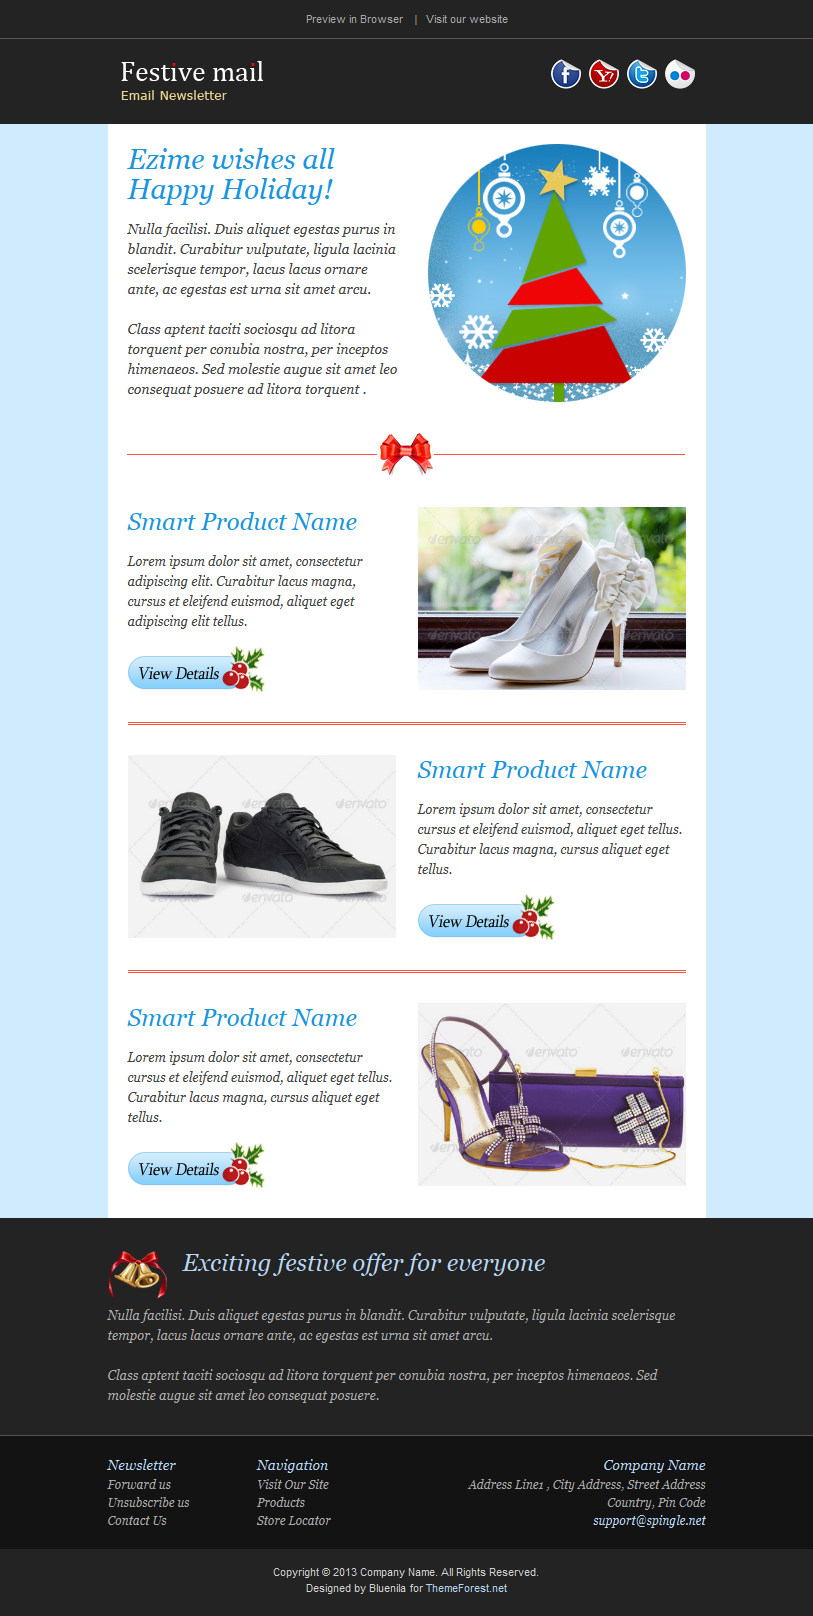 Awesome email template to greet your friends in this